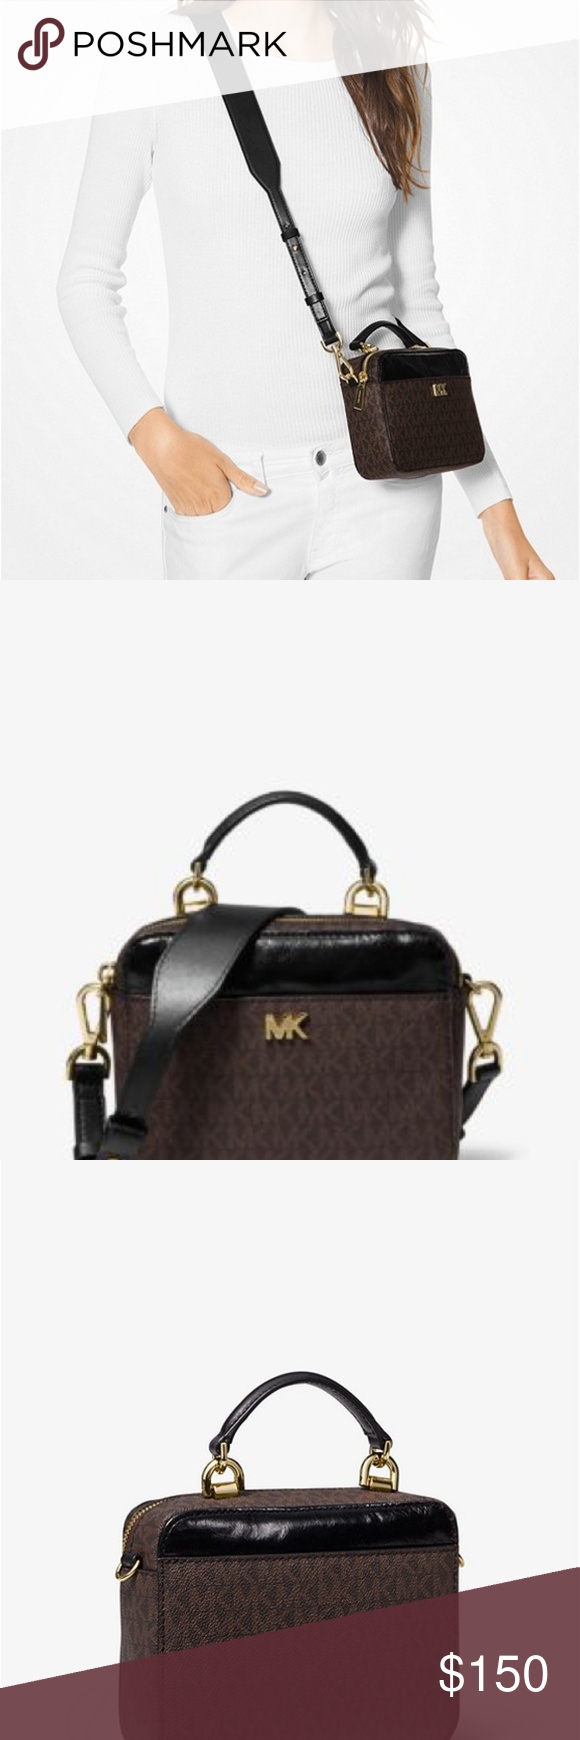 f903e869f9caa5 MICHAEL KORS Mott Mini Logo Leather Crossbody MICHAEL MICHAEL KORS Mott  Mini Logo and Leather Crossbody